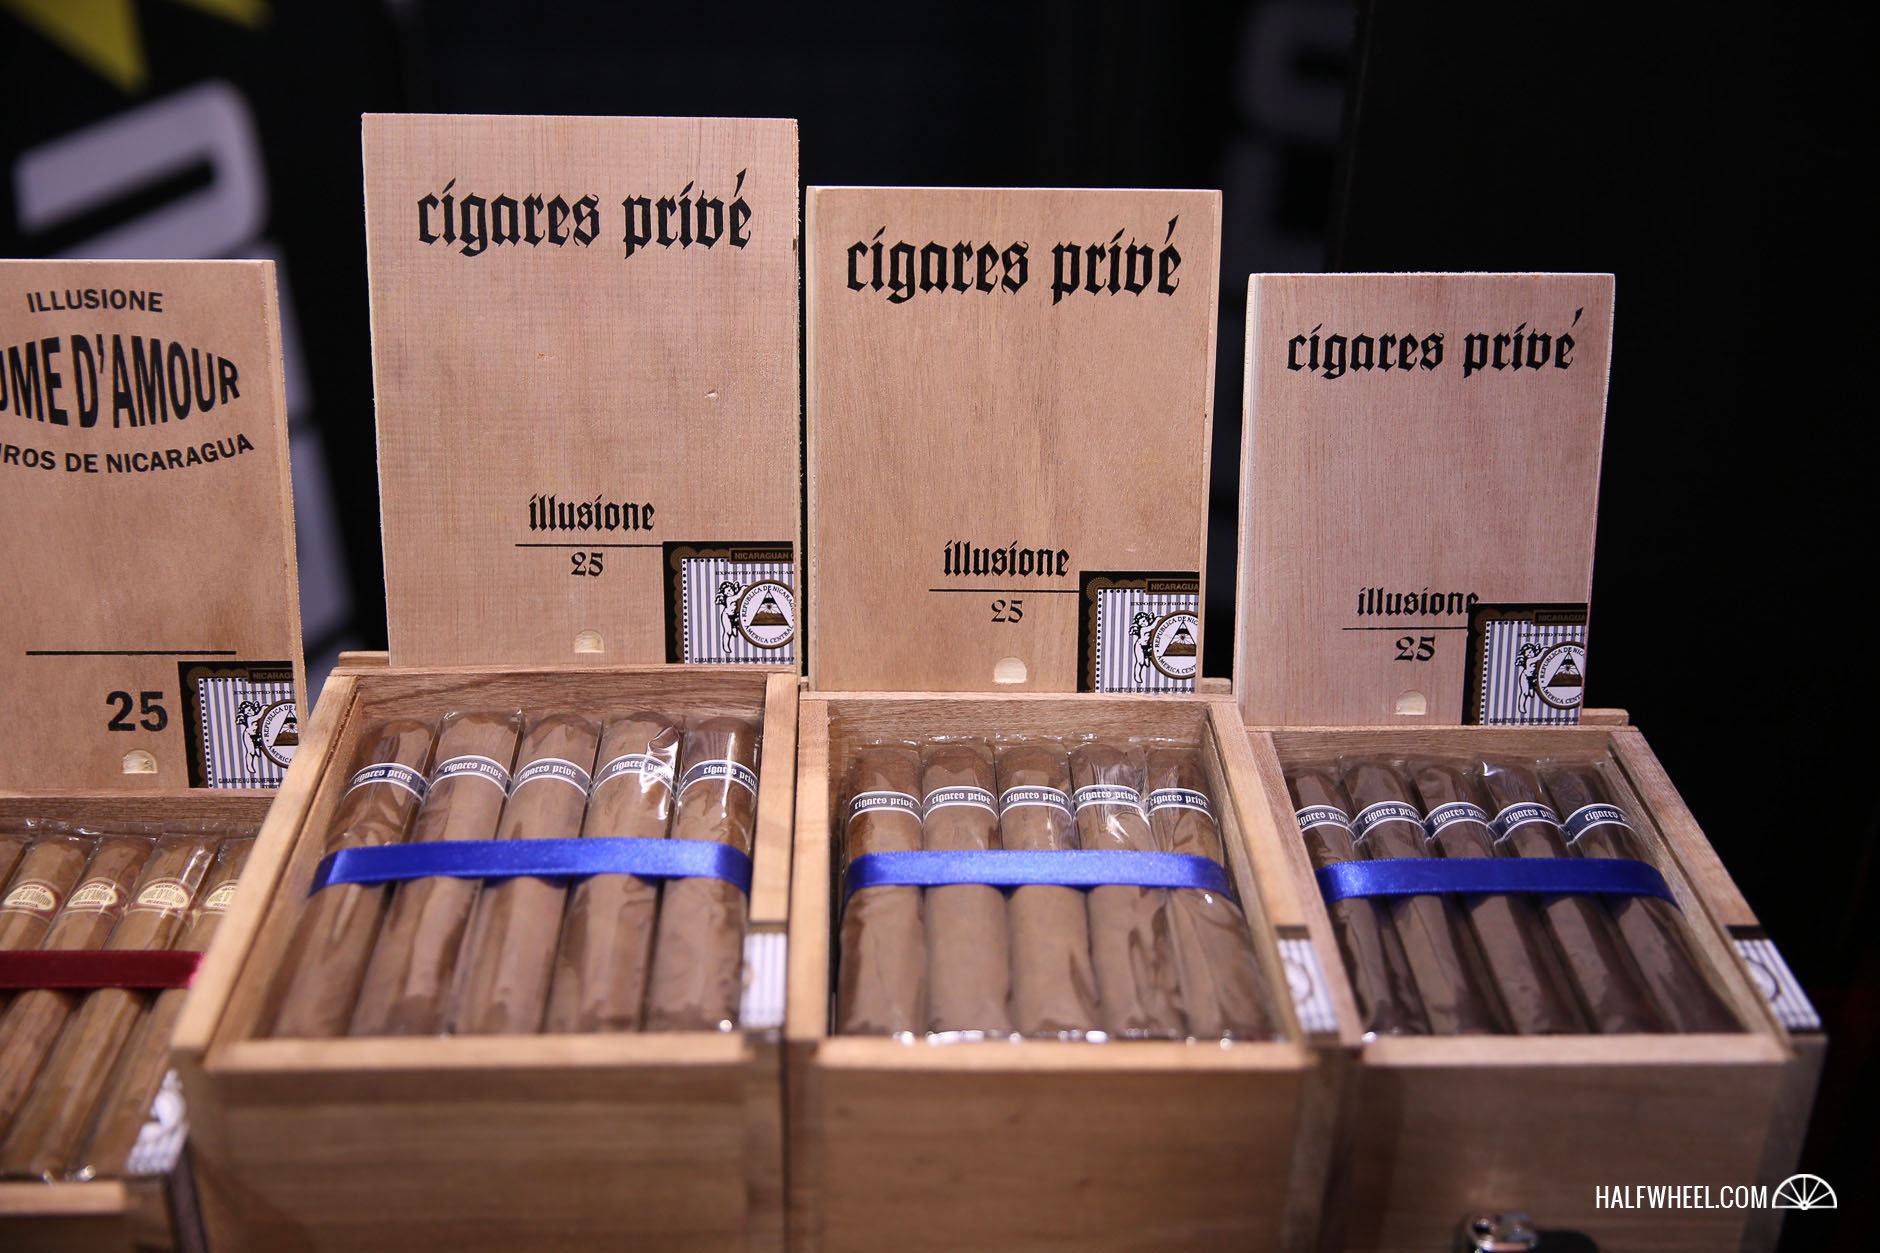 Illusione Cigars Prive